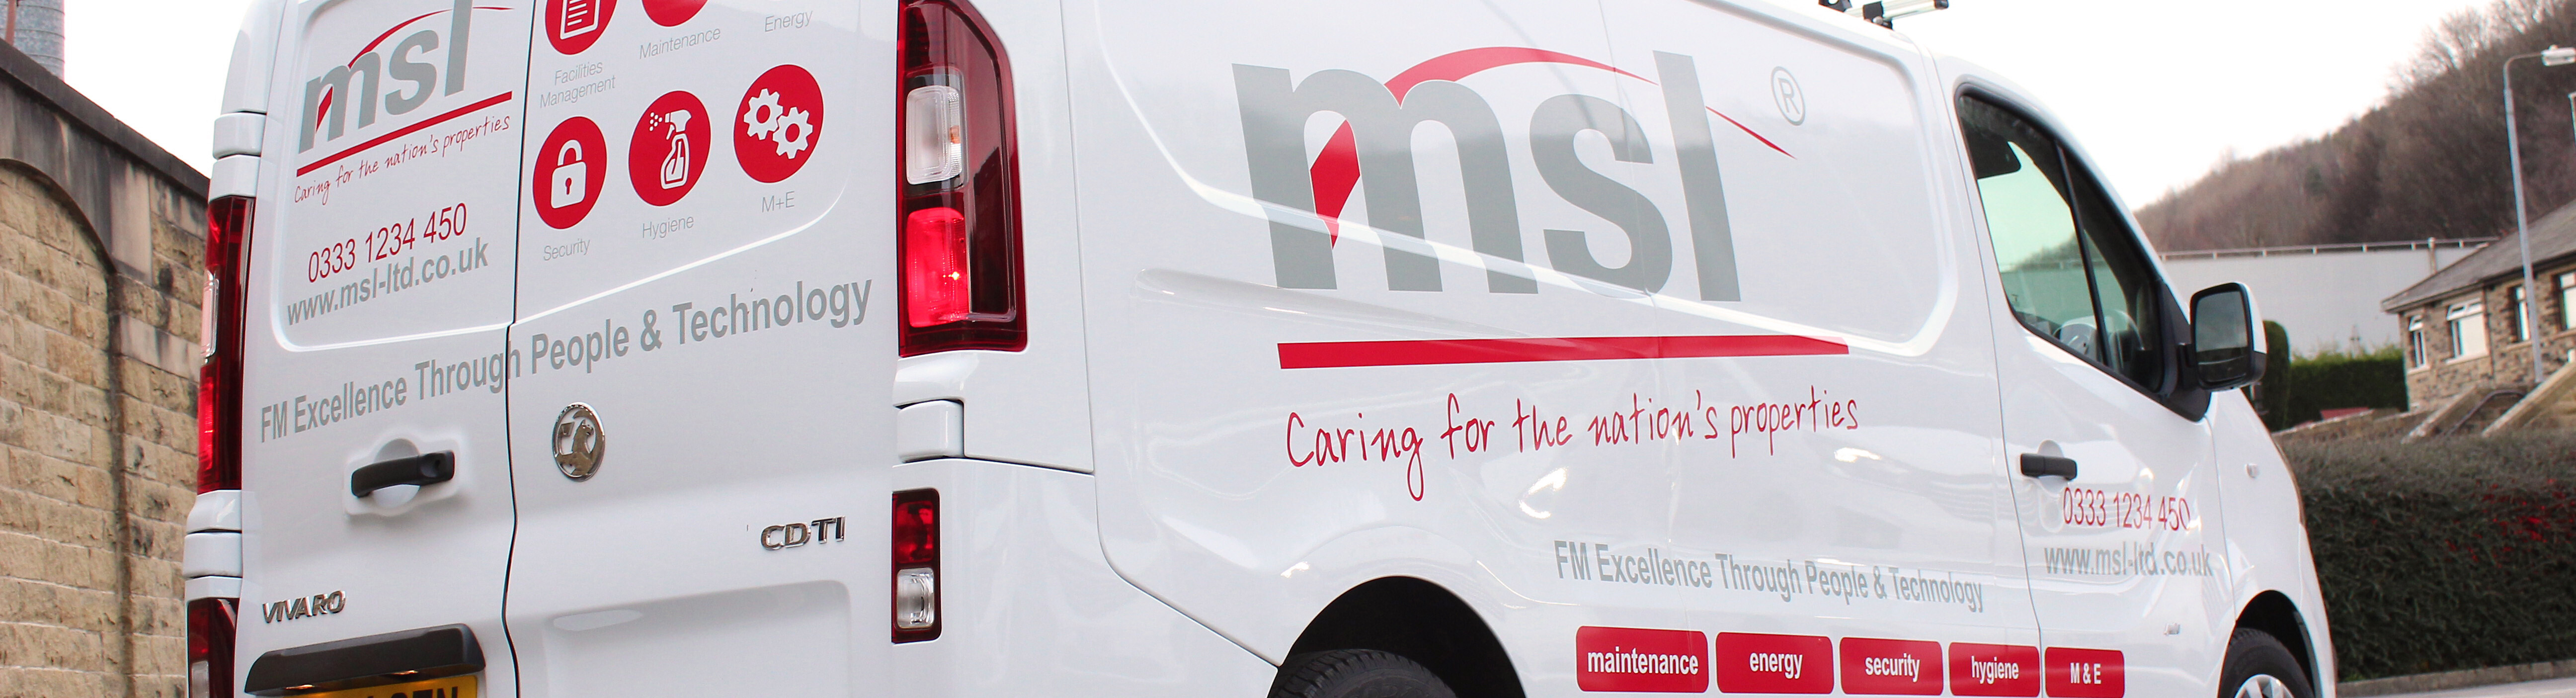 MSL New Van Fleet